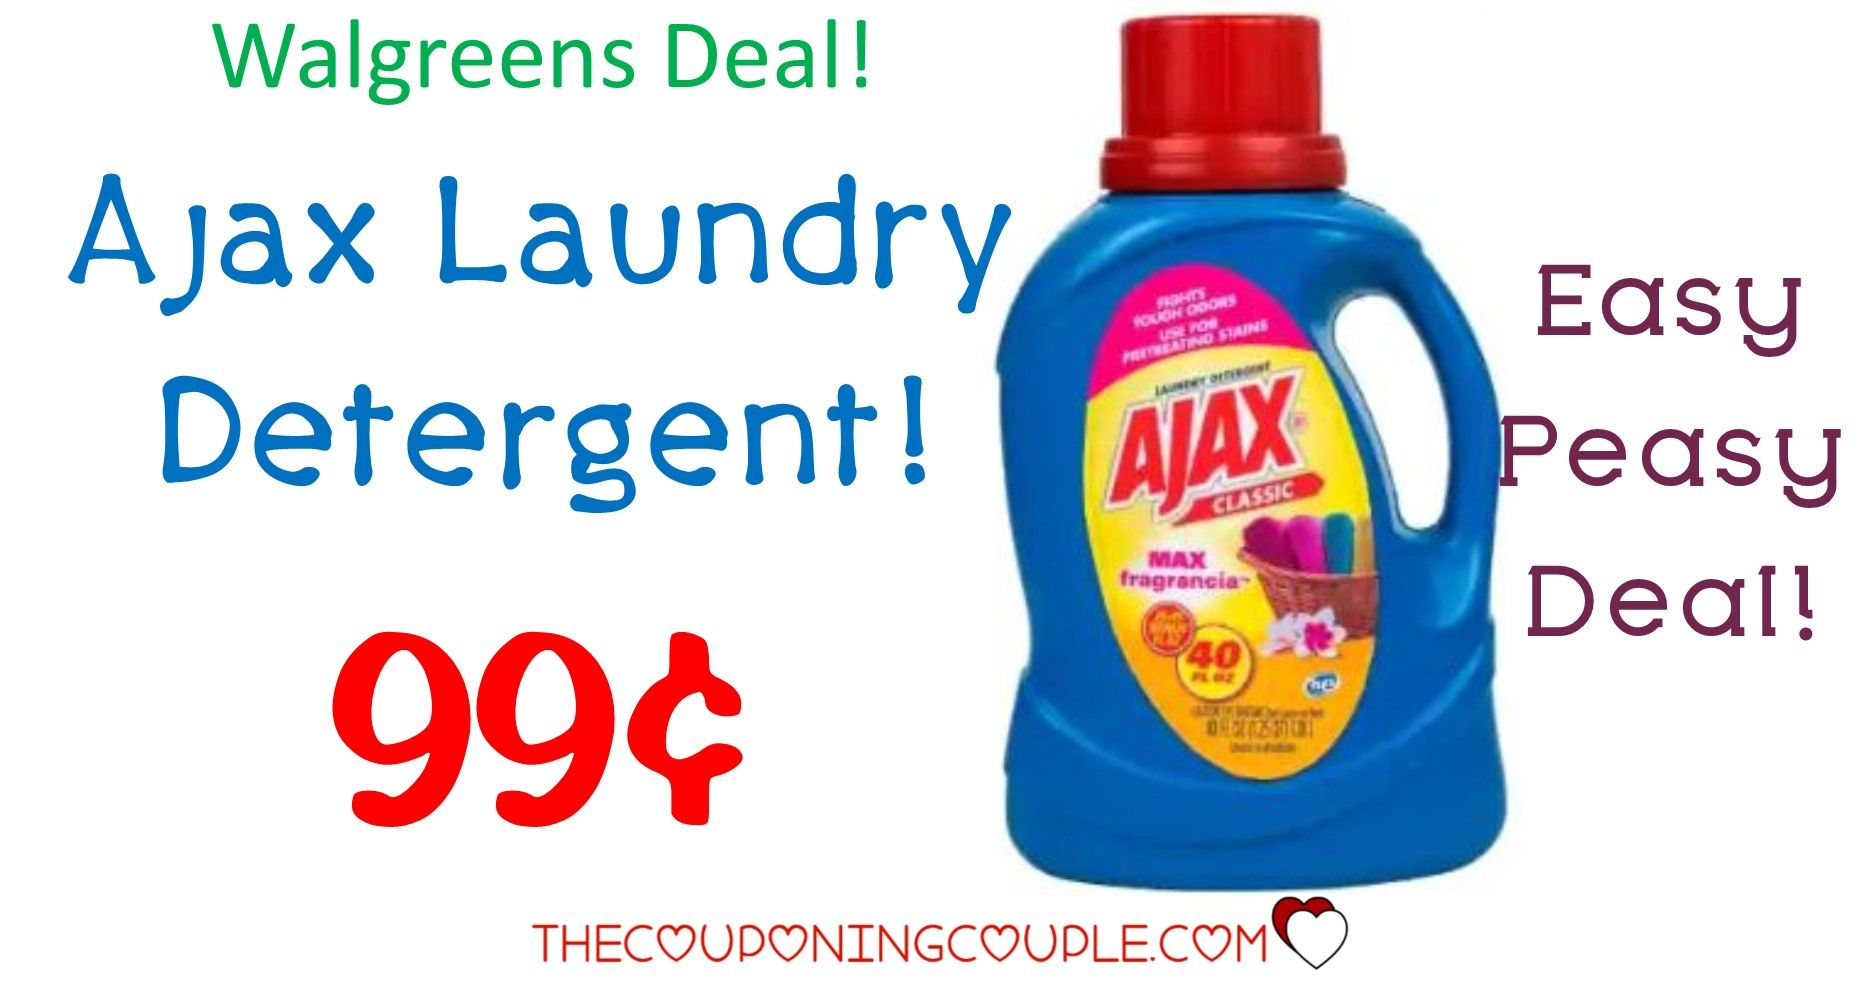 Ajax Laundry Detergent Only 0 99 With Walgreens Deal Laundry